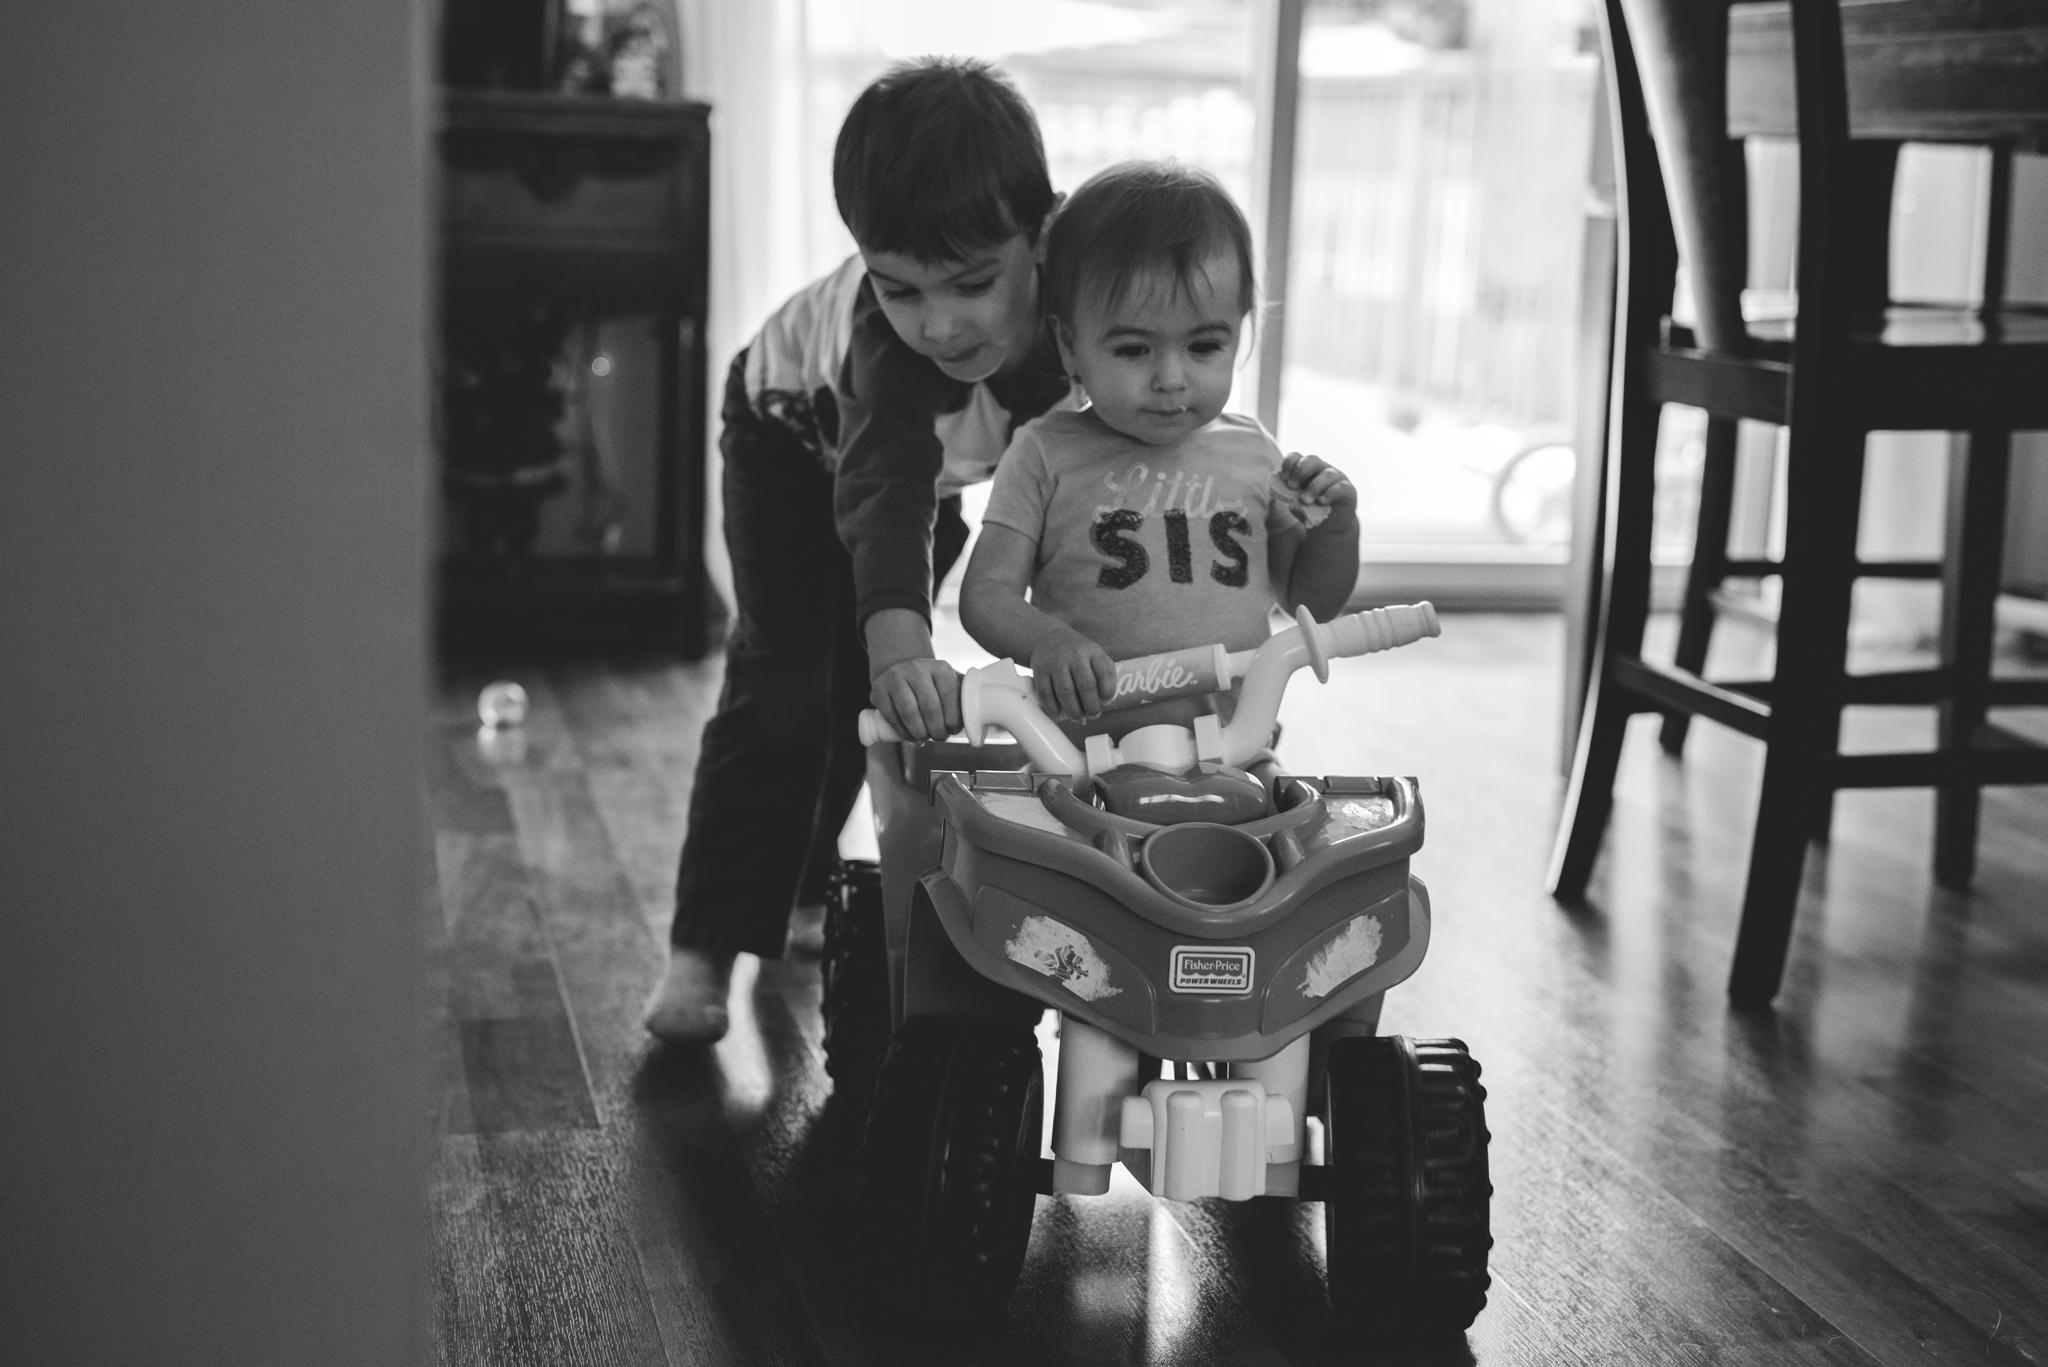 Big brother comes home from school just before lunch. Let's play!